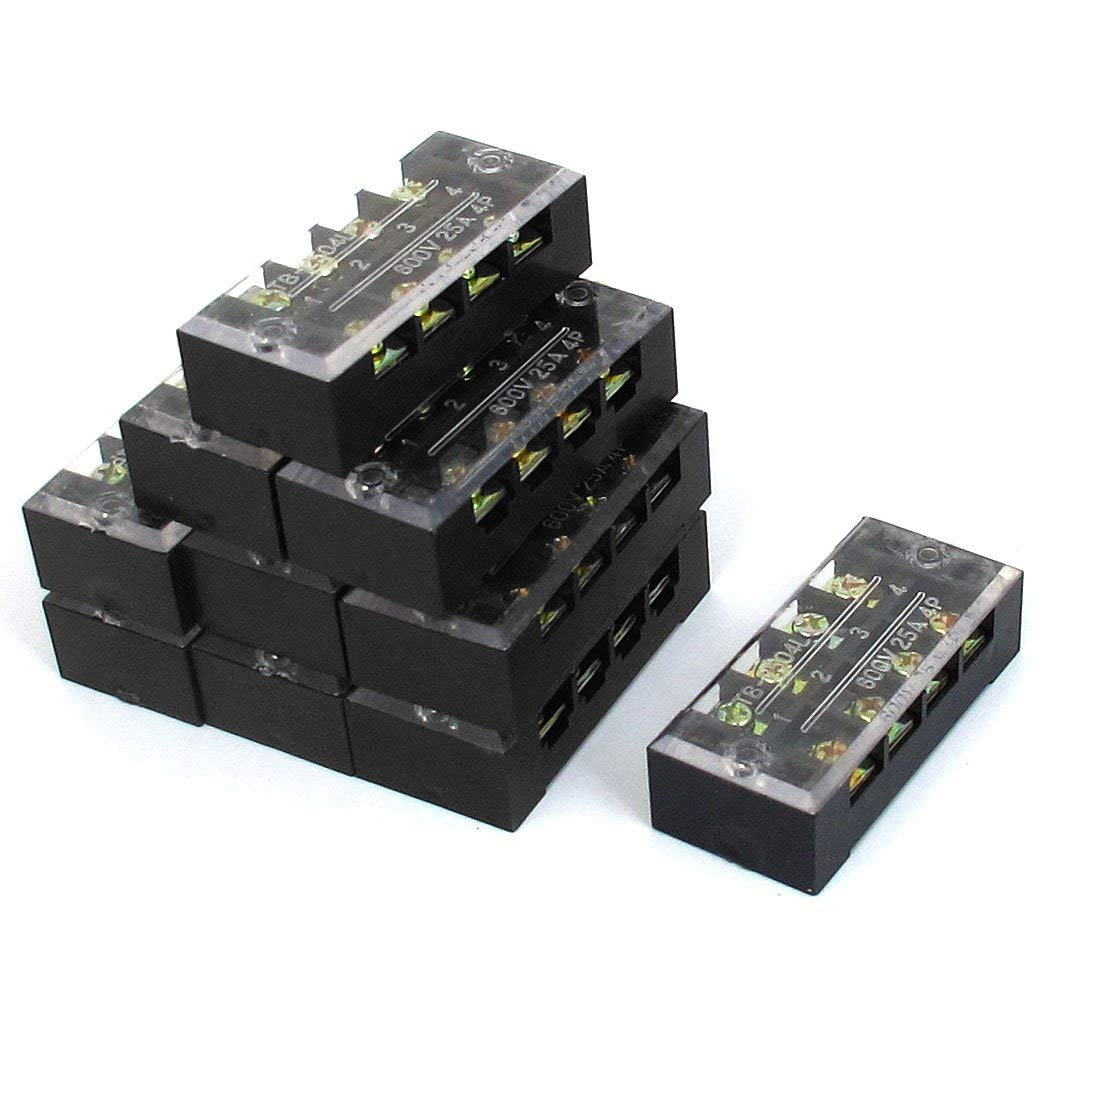 Aexit 10 Pcs 2 Row 4 Position Screw Terminal Block Strip Connector 600V 25A